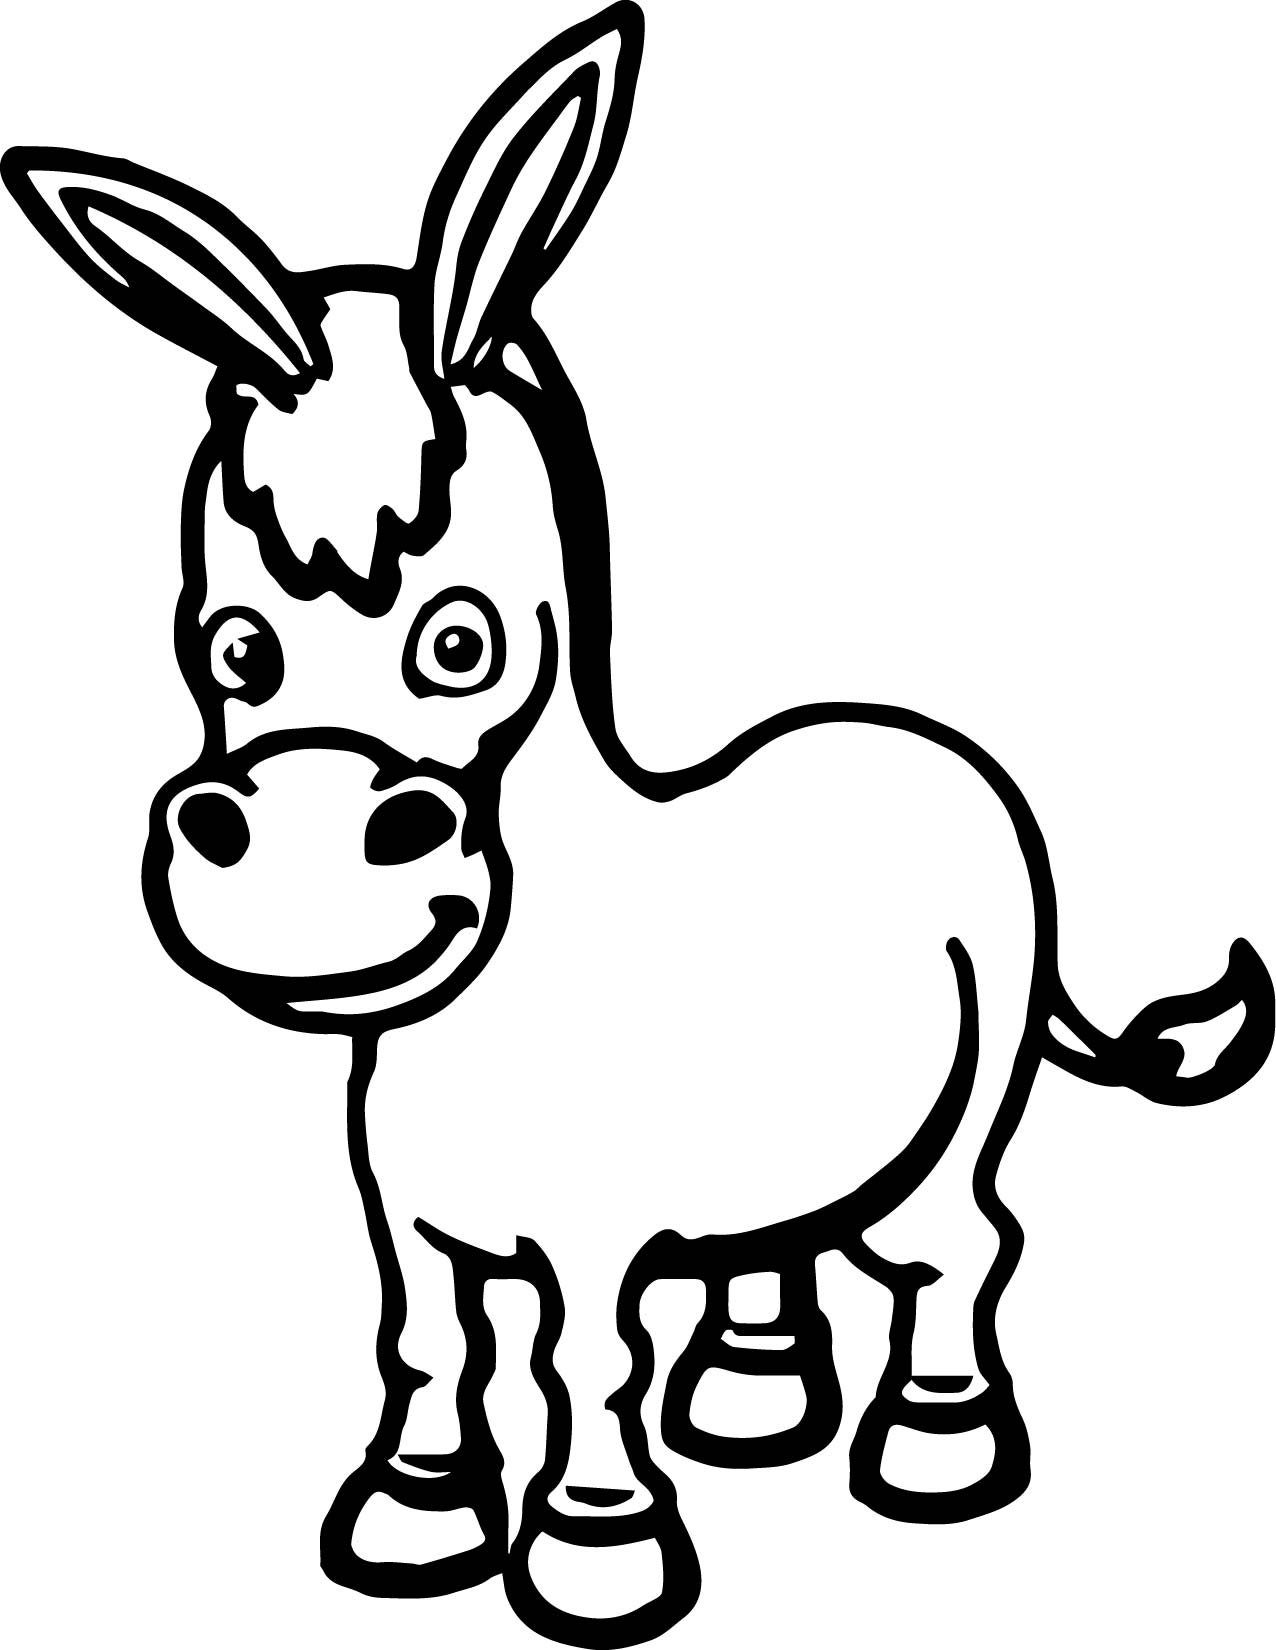 Cartoon Cute Donkey Coloring Page